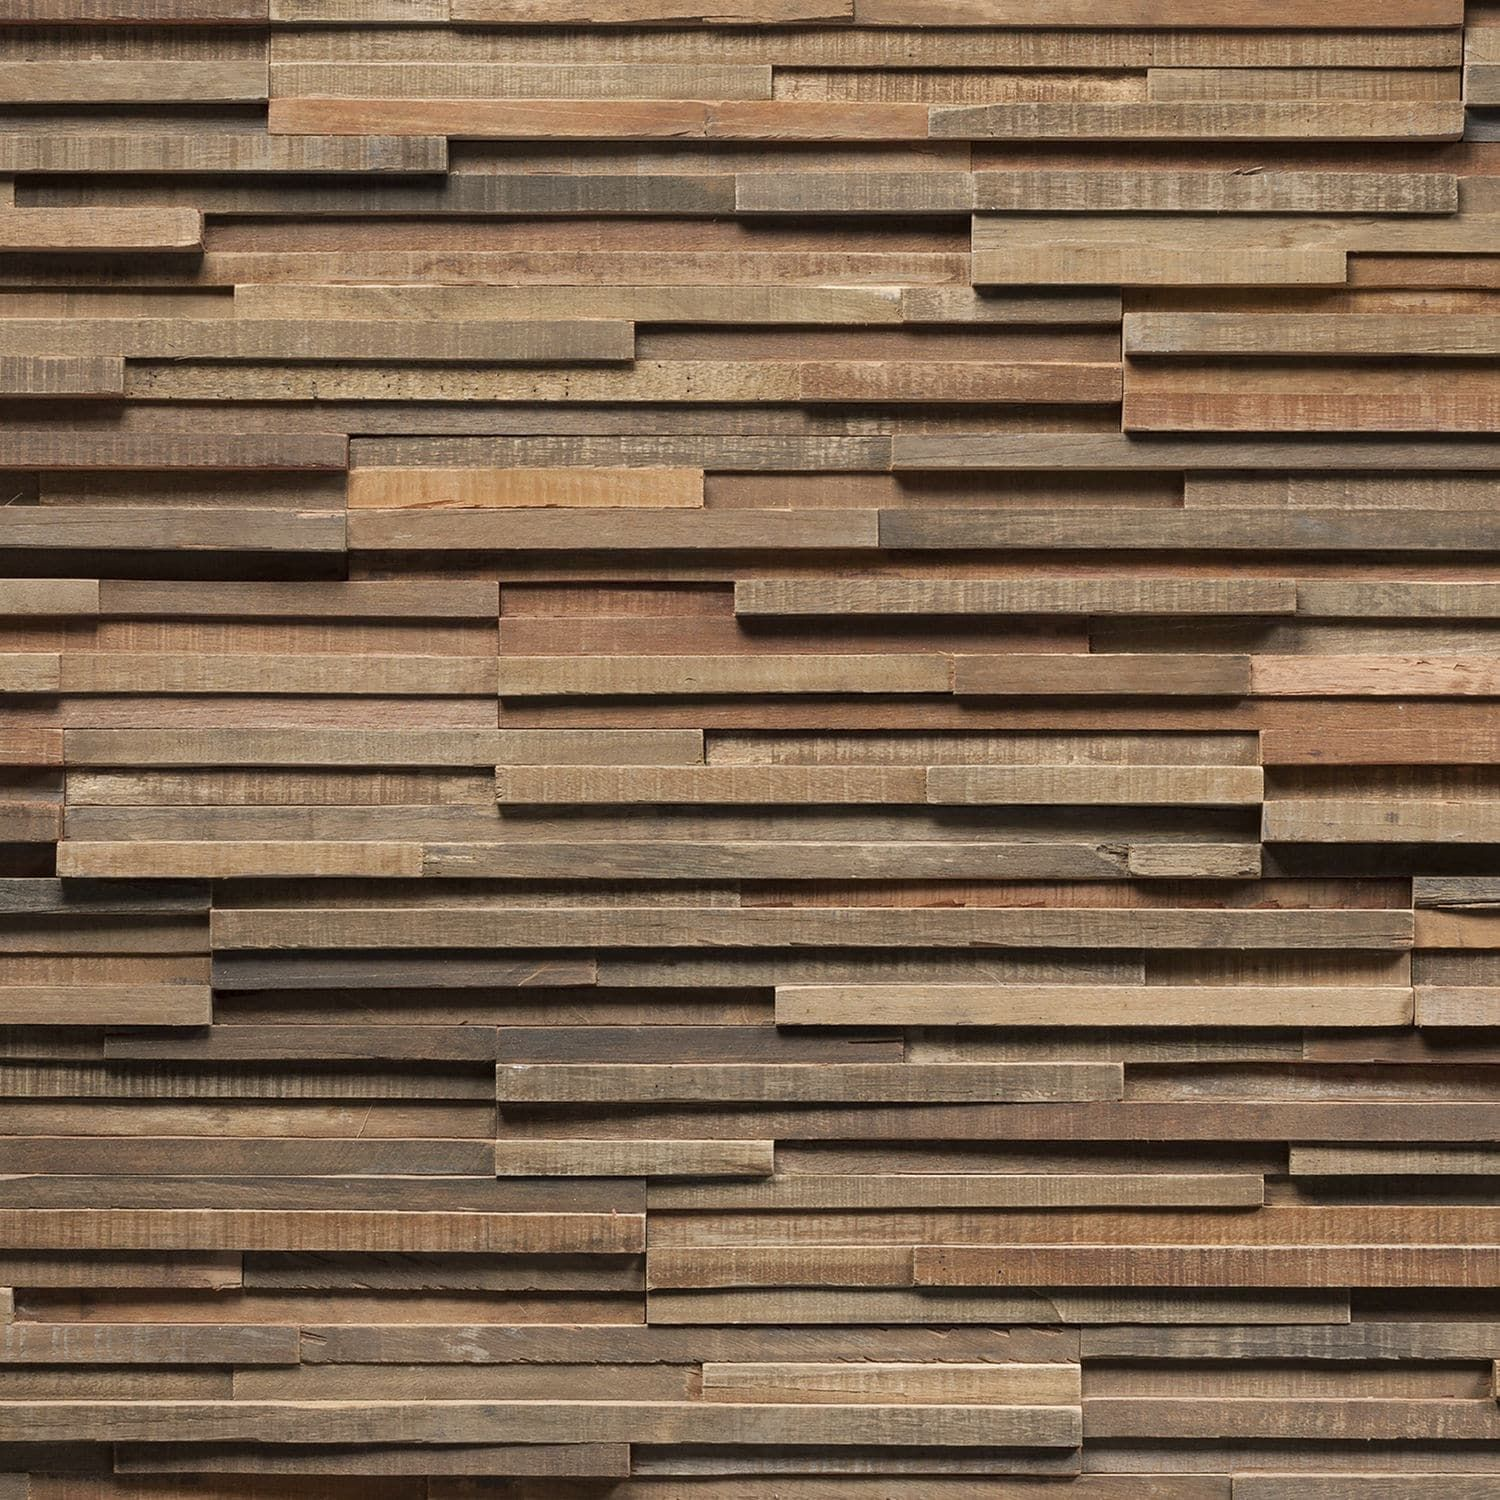 Wooden Wall Cladding Panel Exterior In Reclaimed Material Wooden Wall Cladding Exterior Wall Materials Wall Cladding Panels